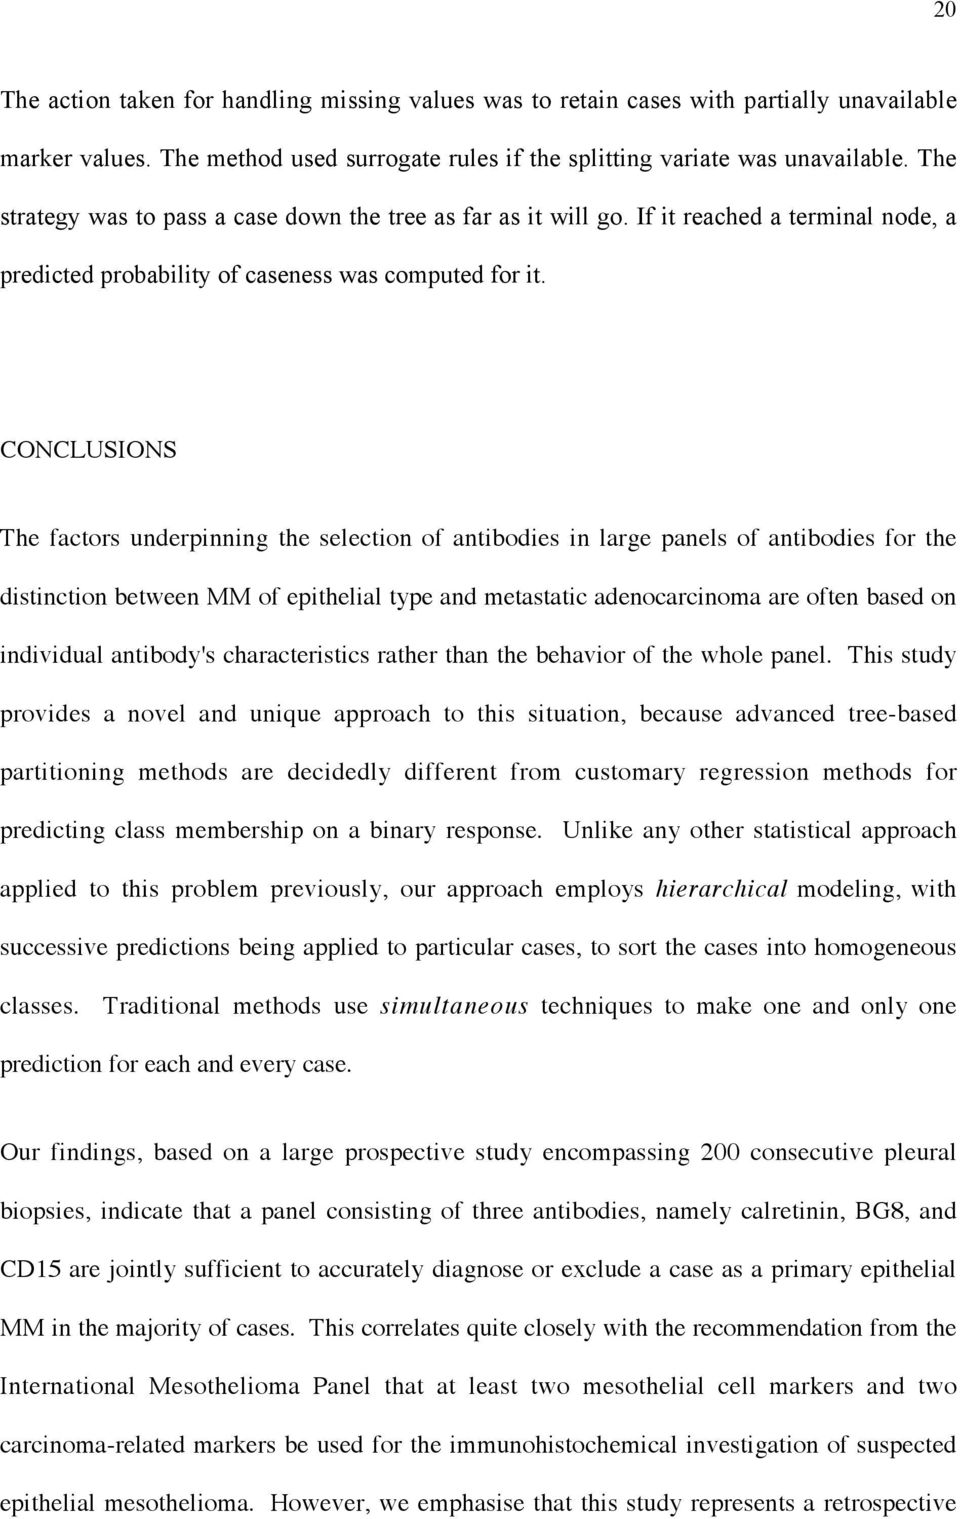 CONCLUSIONS The factors underpinning the selection of antibodies in large panels of antibodies for the distinction between MM of epithelial type and metastatic adenocarcinoma are often based on